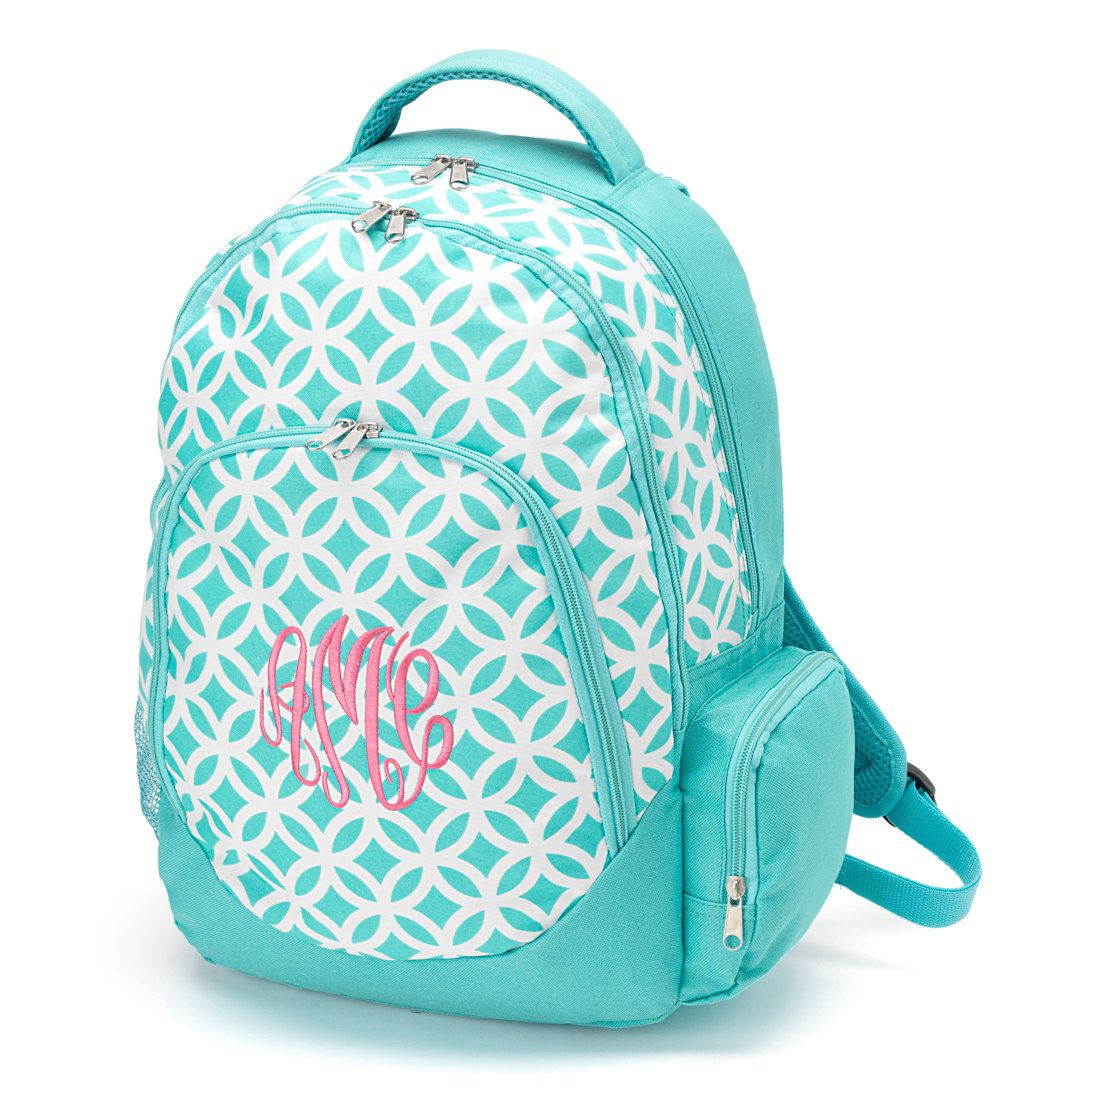 Personalized Sadie Girls Backpack - Aqua | Back to, Back to school ...